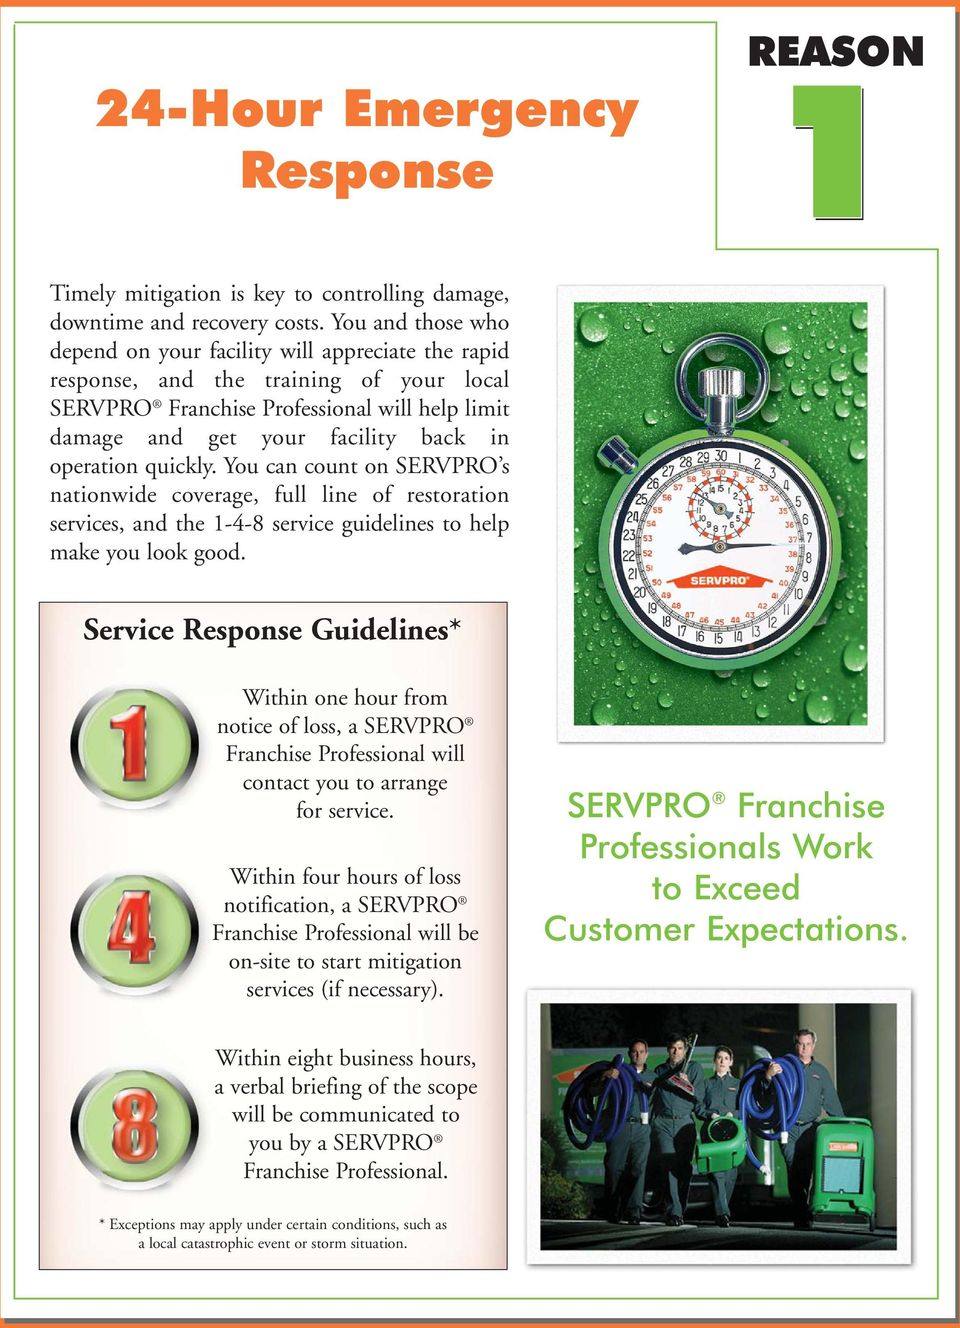 operation quickly. You can count on SERVPRO s nationwide coverage, full line of restoration services, and the 1-4-8 service guidelines to help make you look good.